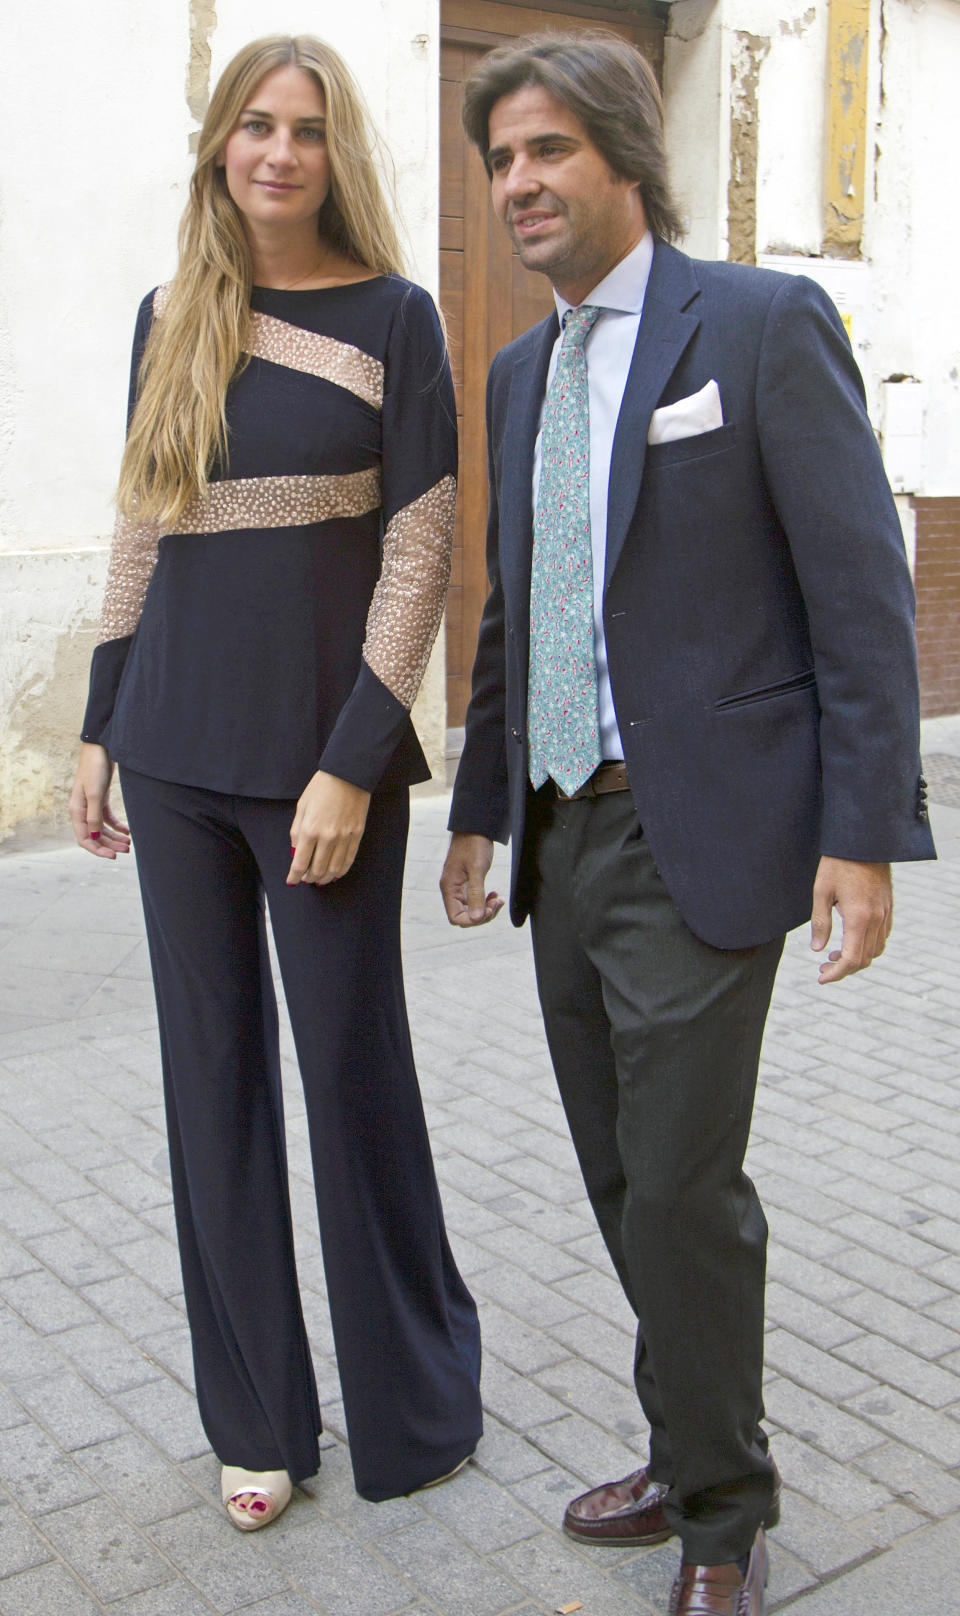 SEVILLE, SPAIN - OCTOBER 23: Sibi Montes and Alvaro Sanchis attend the christening of Fran Rivera and Lourdes Montes's daughter Carmen Rivera on October 23, 2015 in Seville, Spain.  (Photo by Europa Press/Europa Press via Getty Images)